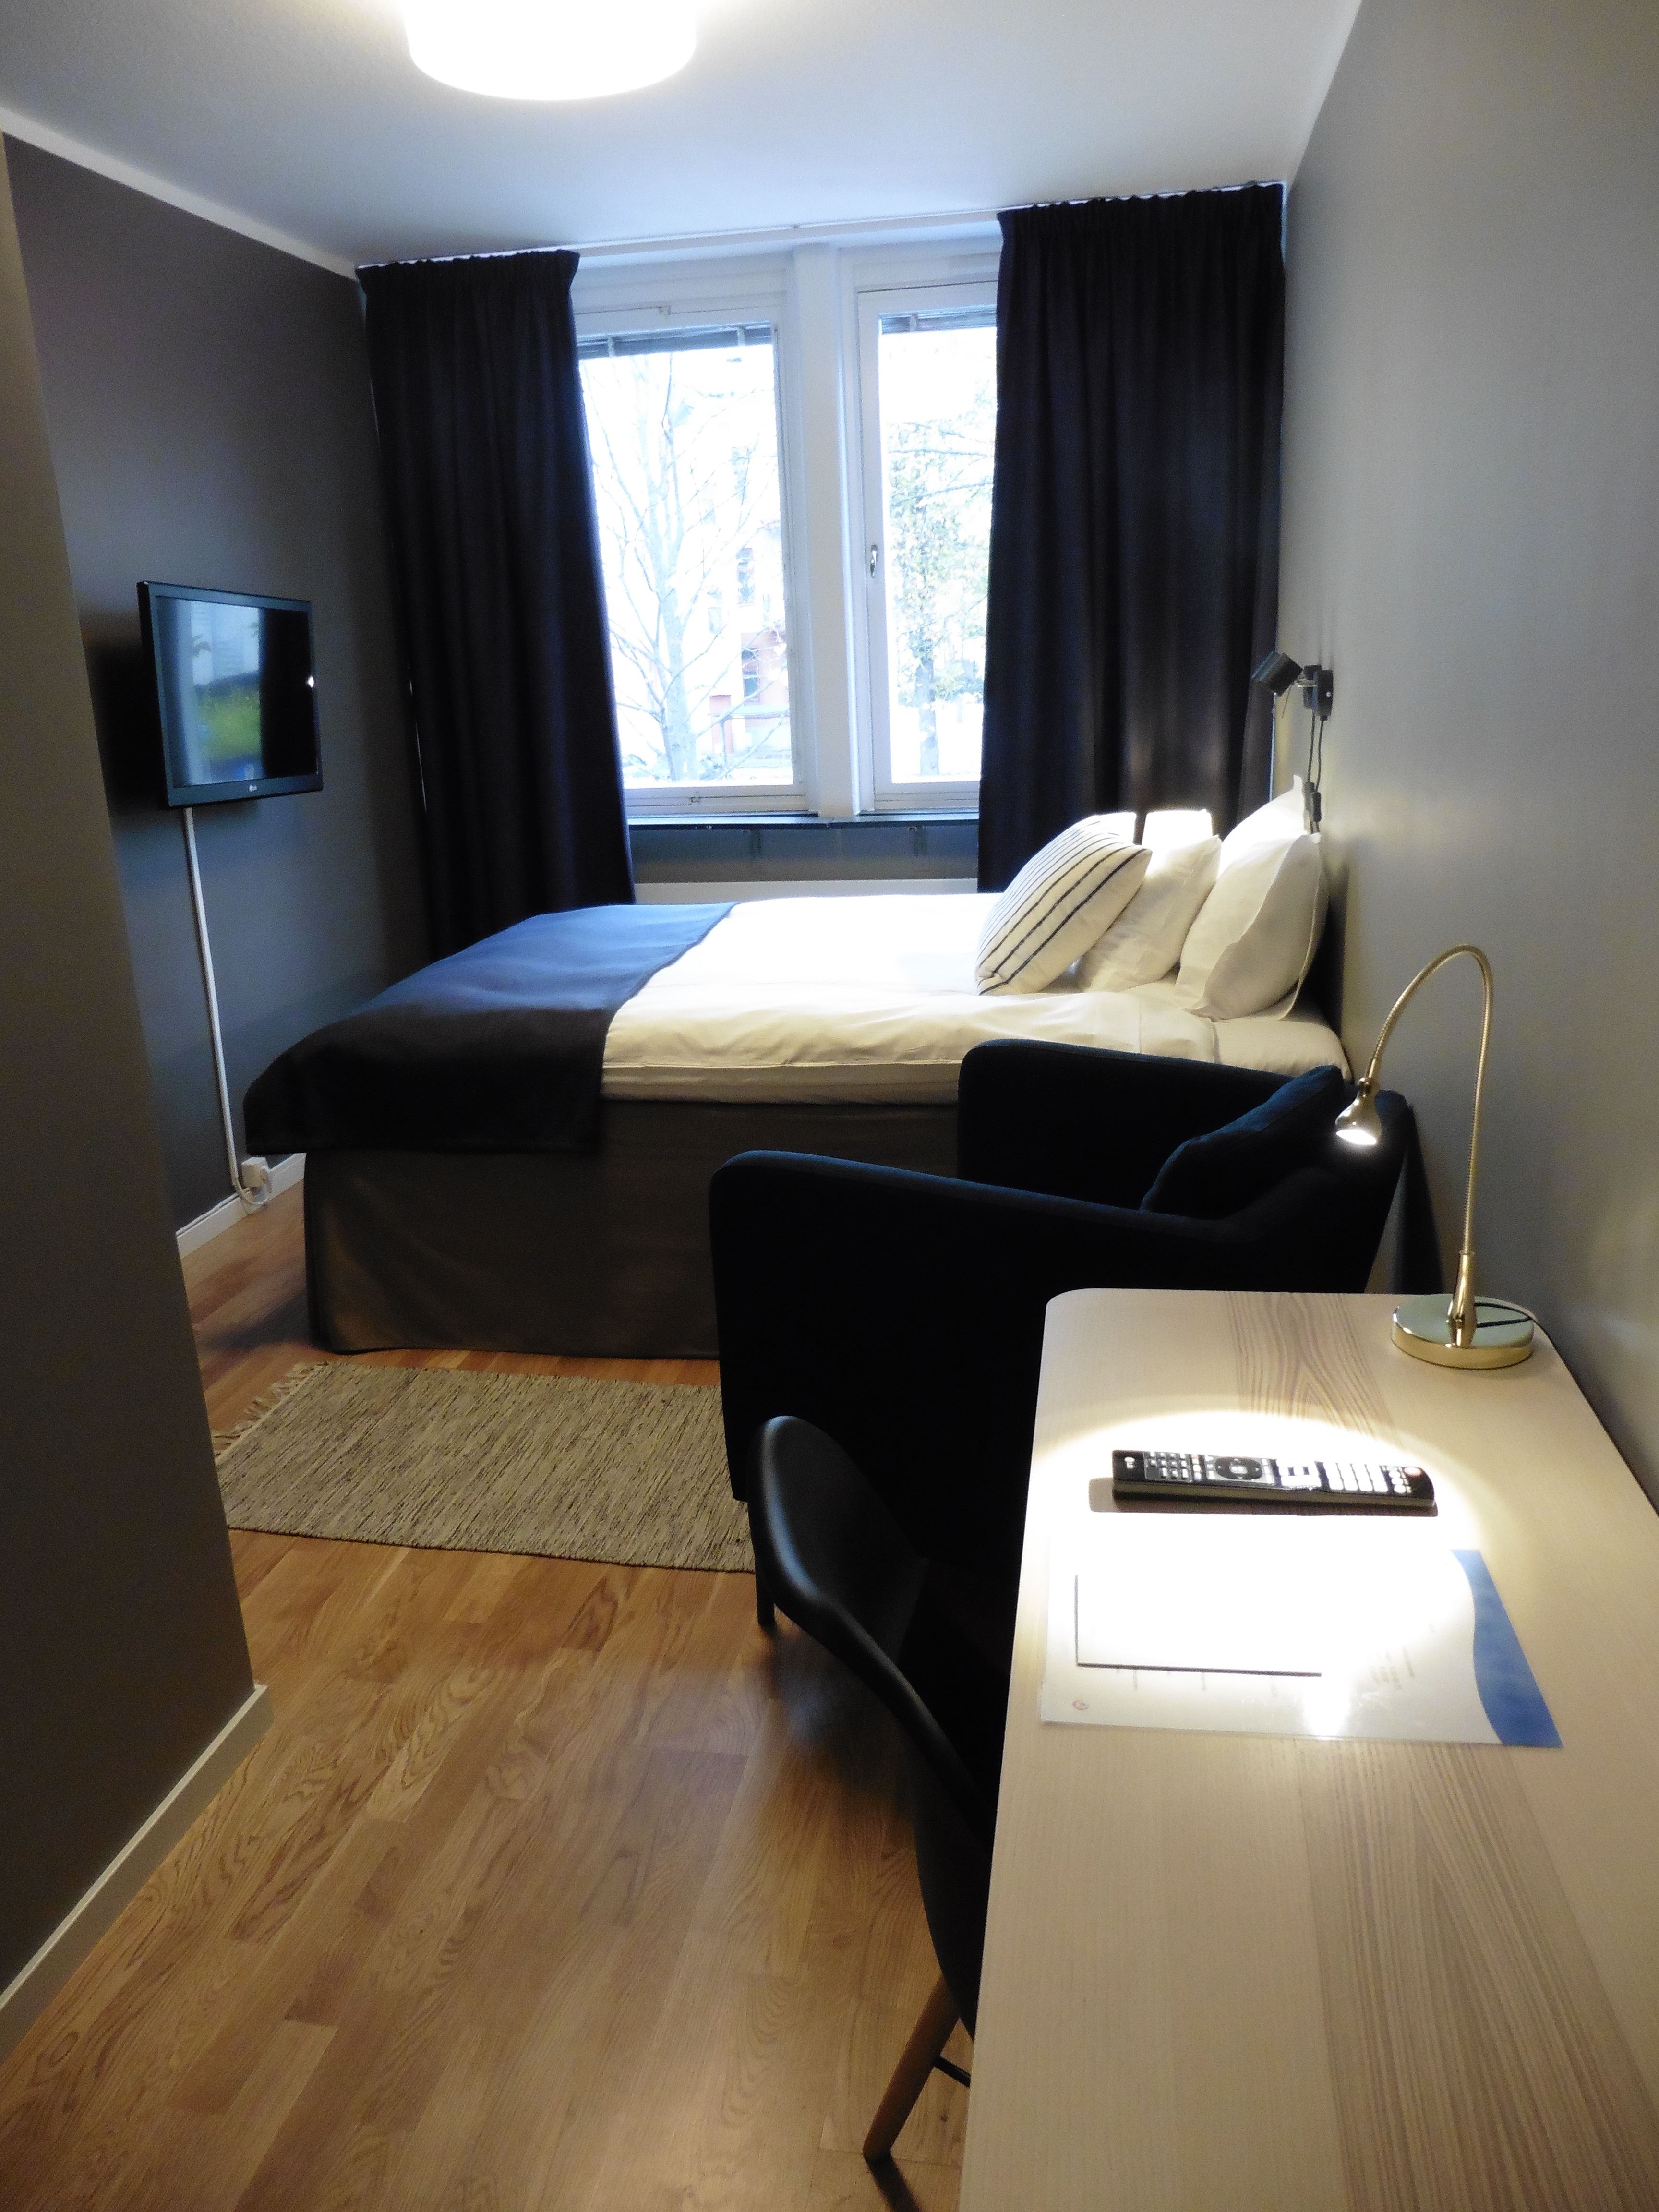 Hotel Falun, Your Hotel Worldwide